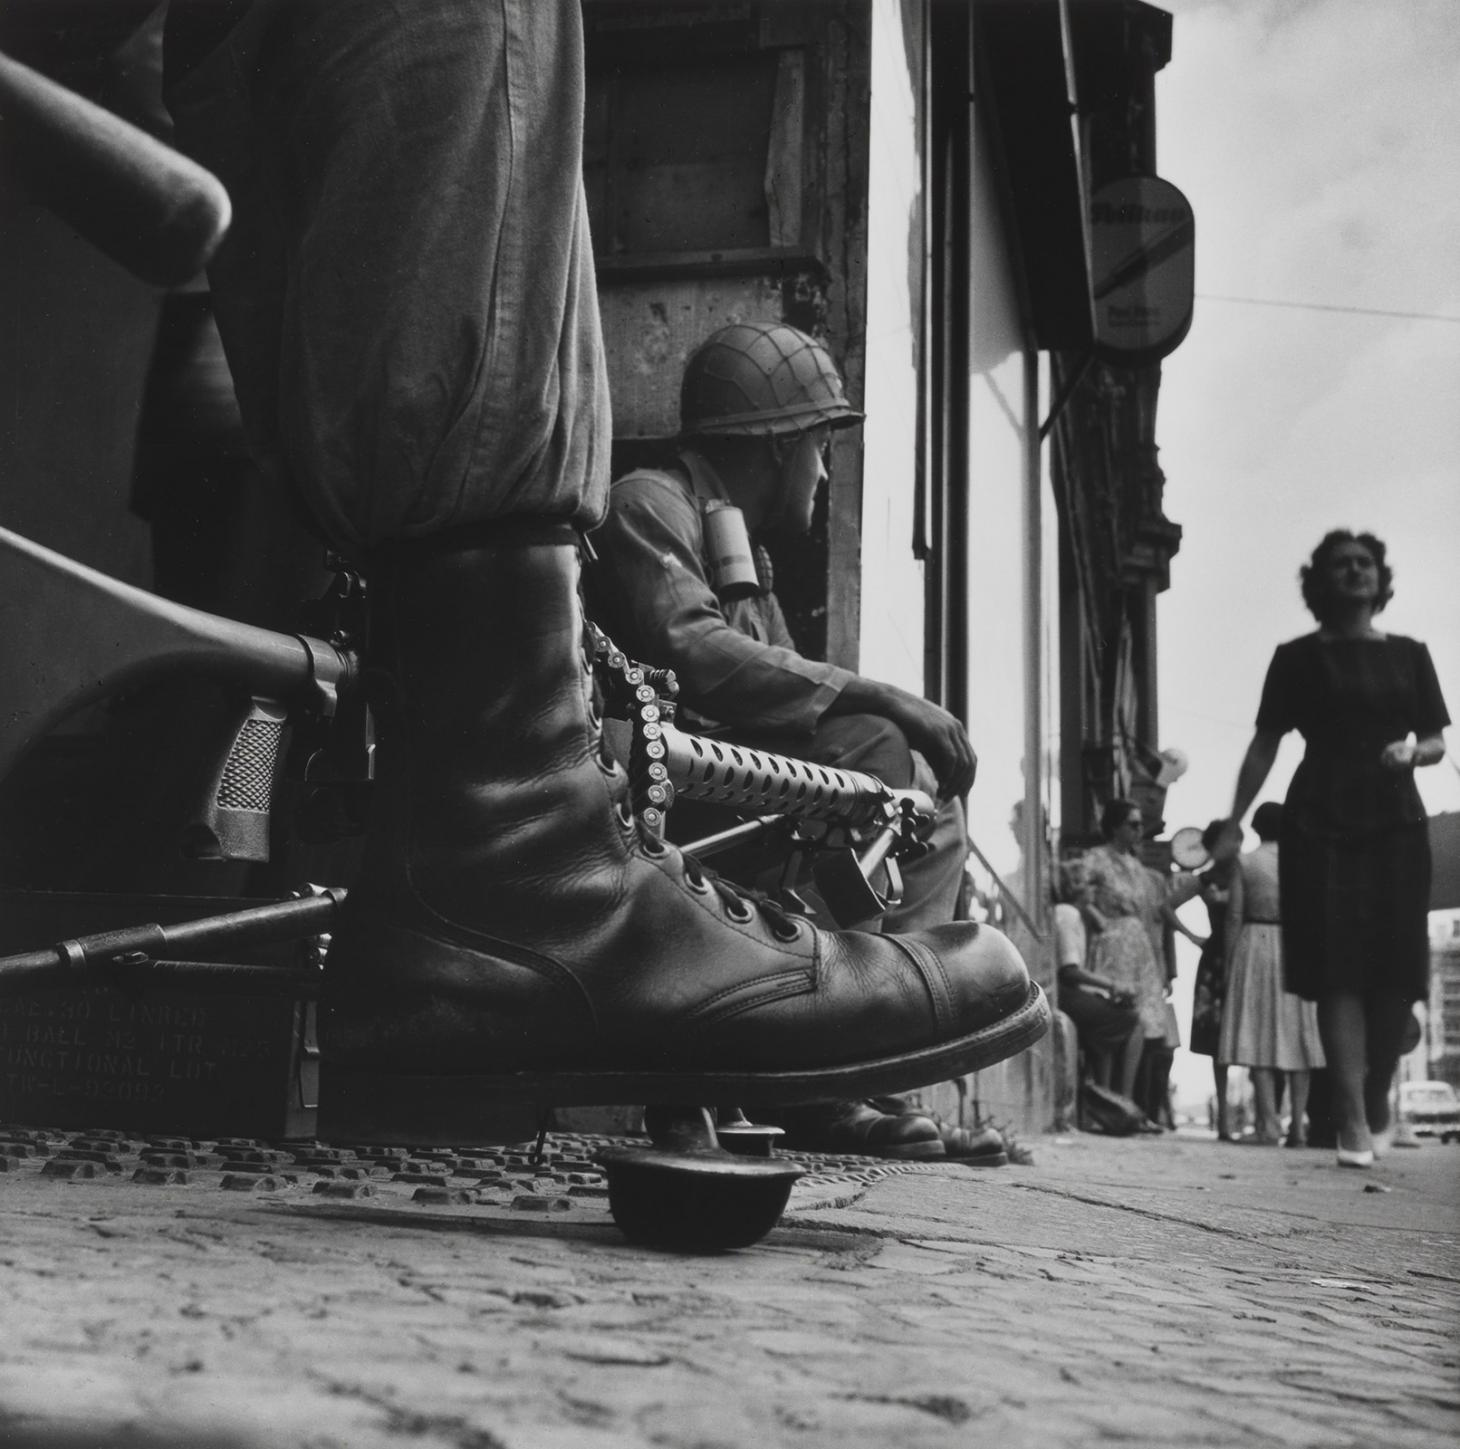 Near Checkpoint Charlie, Berlin, 1961, by Don McCullin